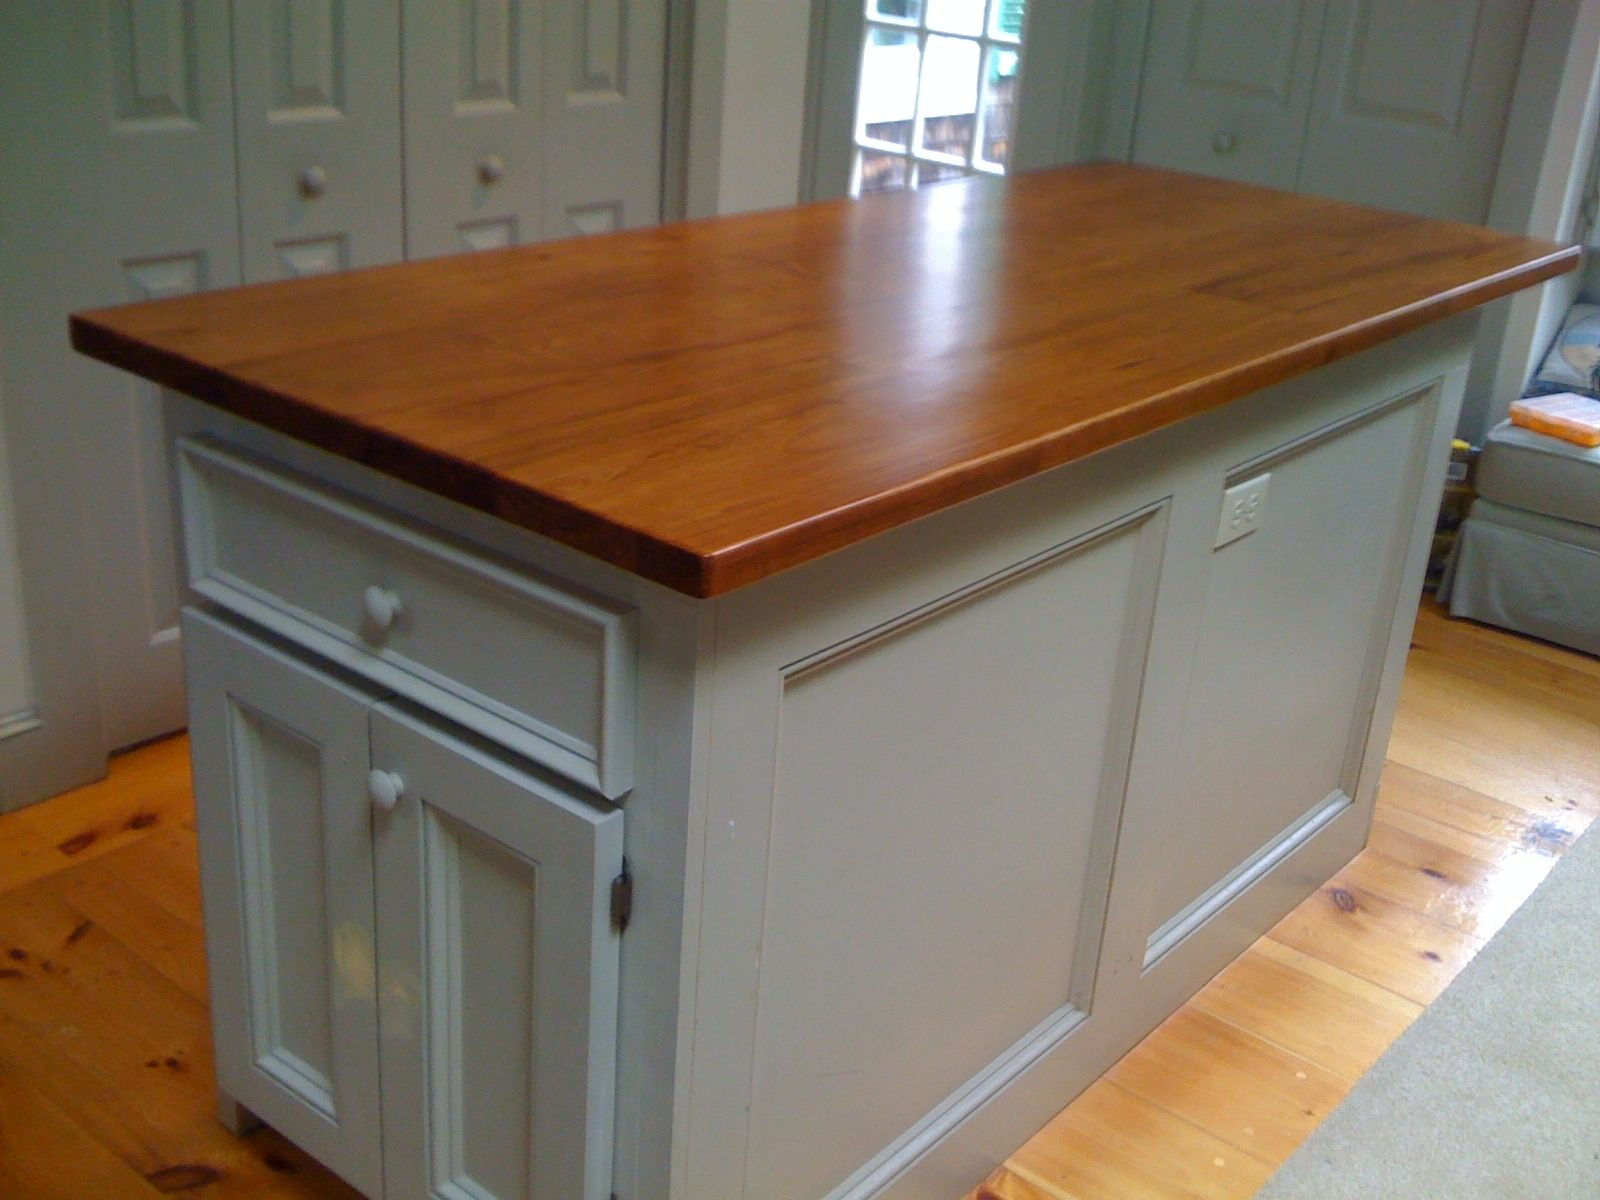 Handmade custom kitchen island reclaimed wood top by cape for Custom kitchen islands